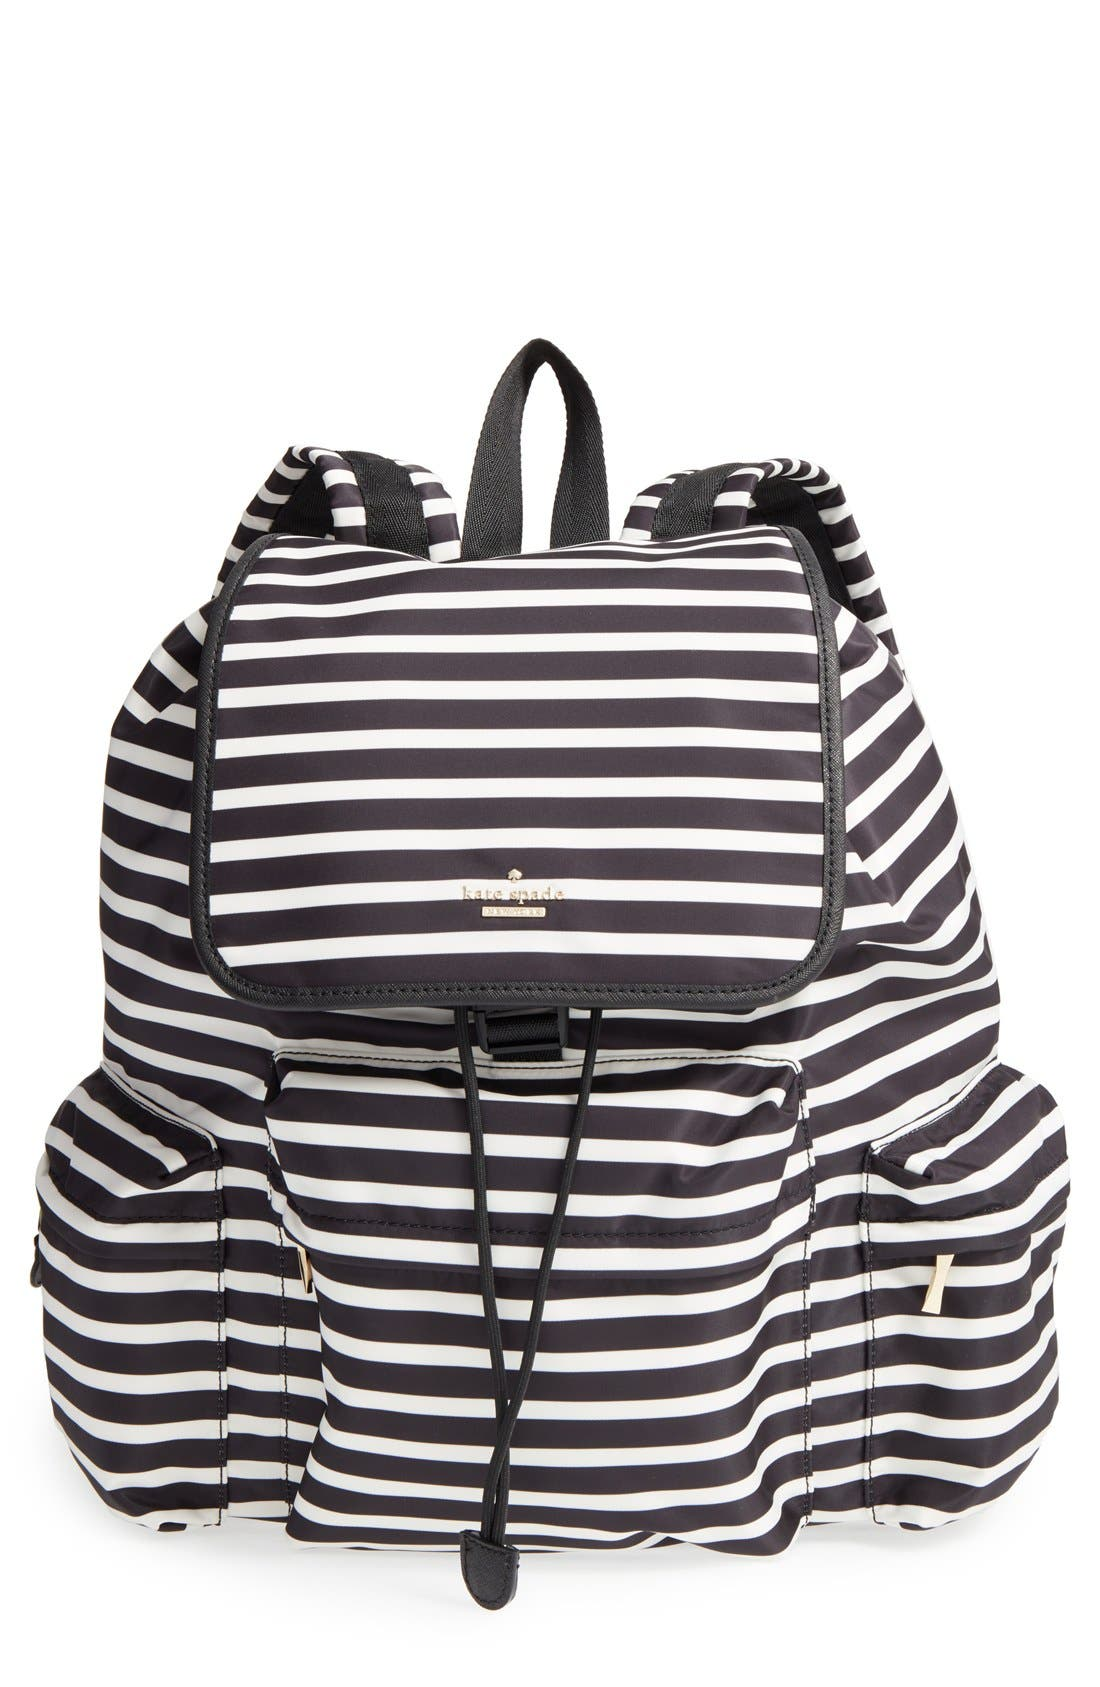 Alternate Image 1 Selected - kate spade new york 'classic - clay' nylon backpack